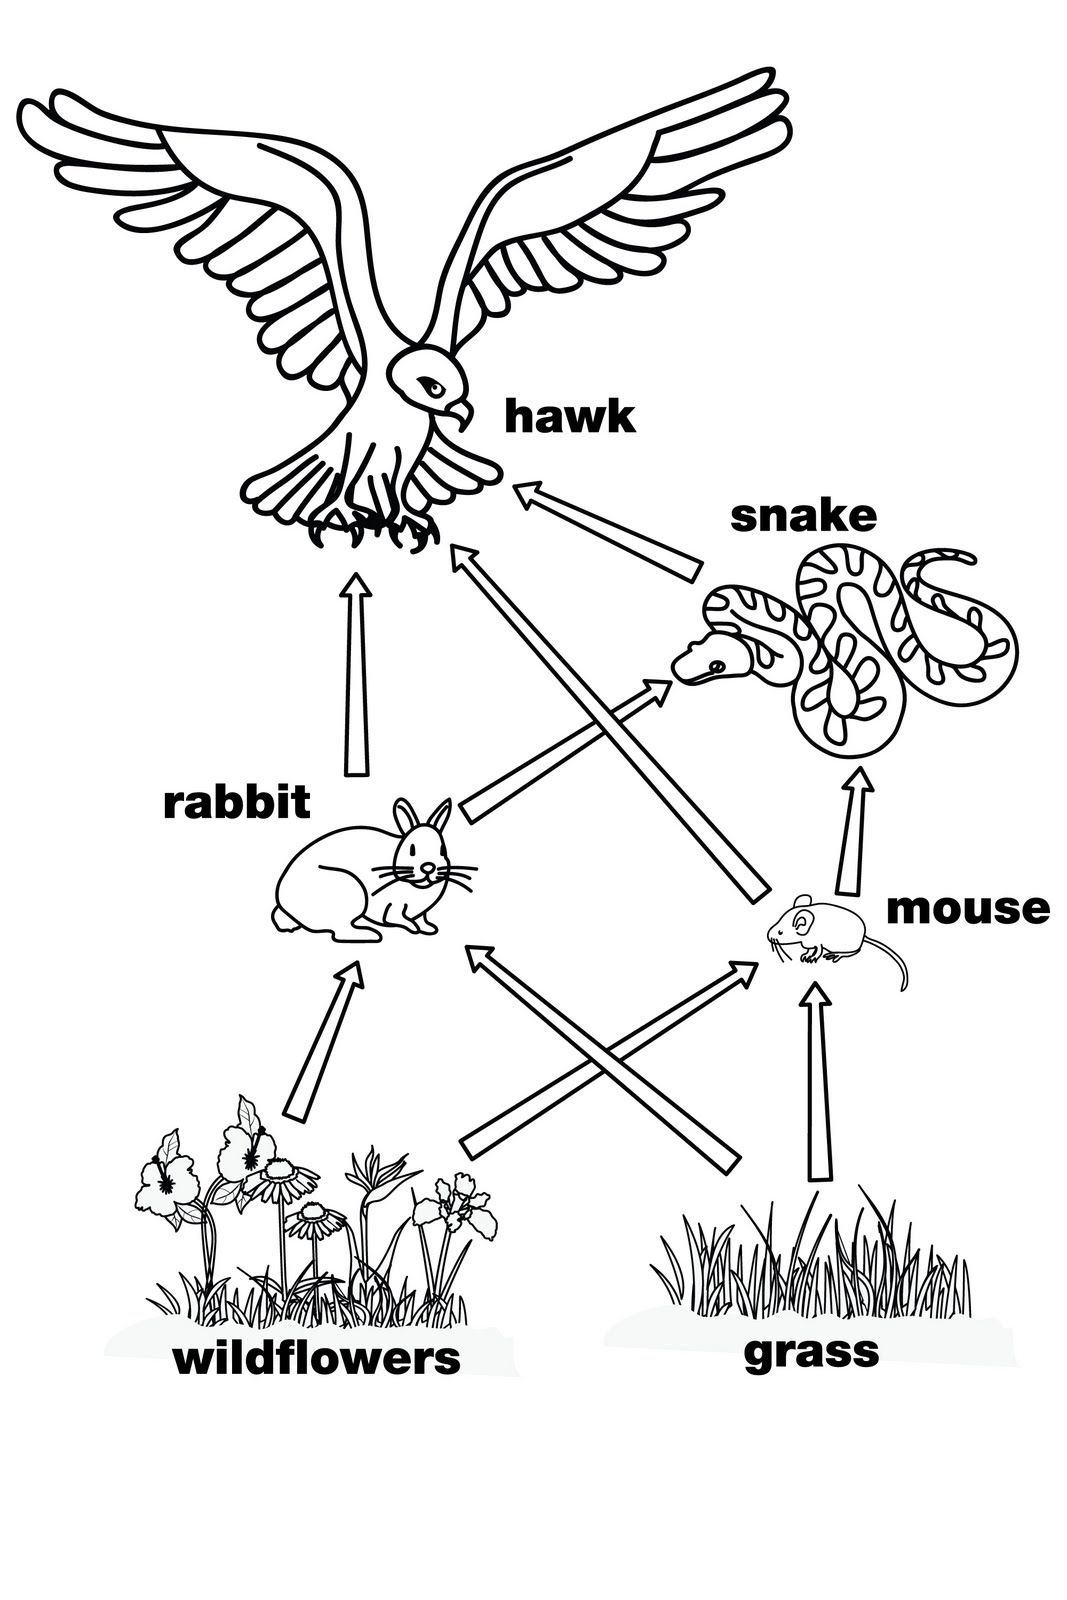 Food Web Diagram: Complex Food Web, Energy Flow through a Frog ...